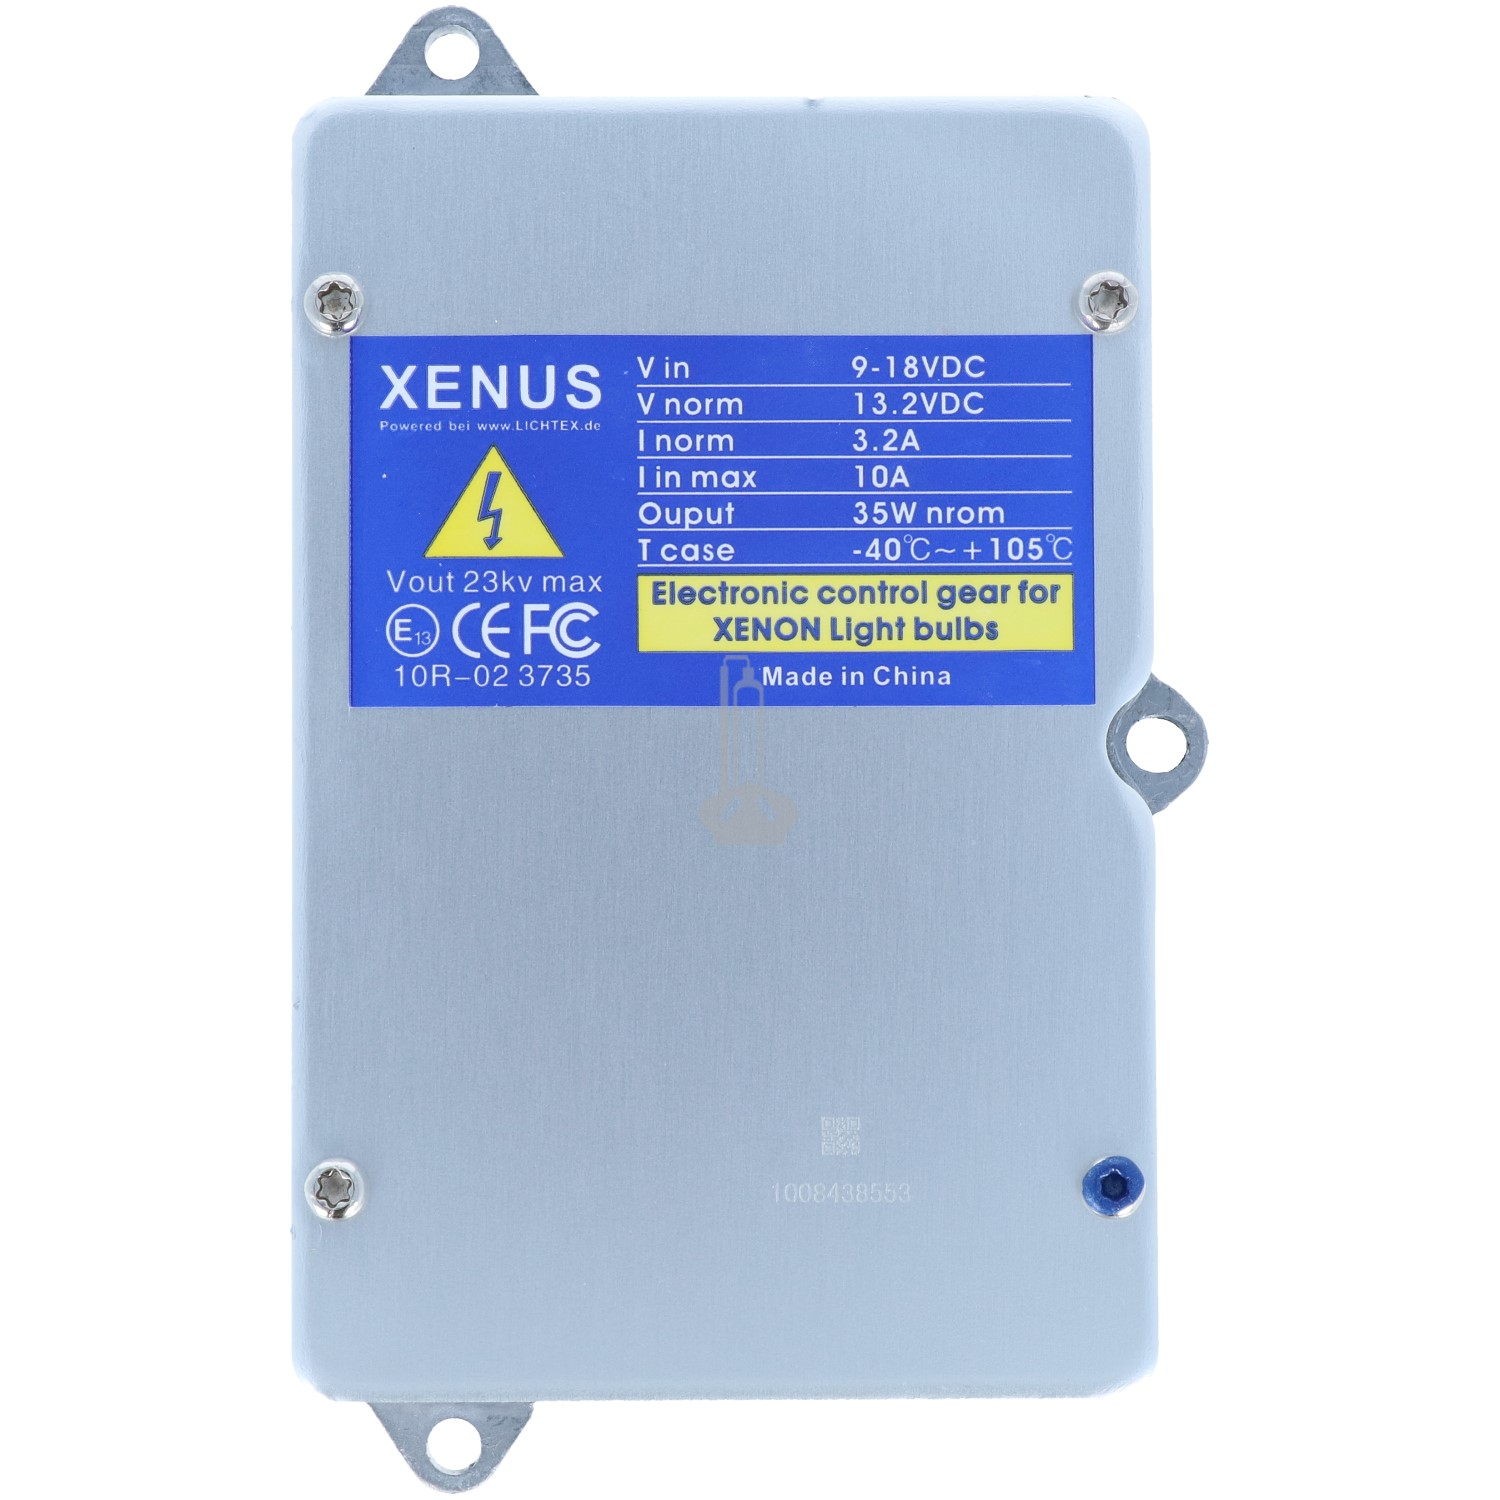 XENUS 5DV 008 290 Xenon Headlight Ballast, Replacement for Hella